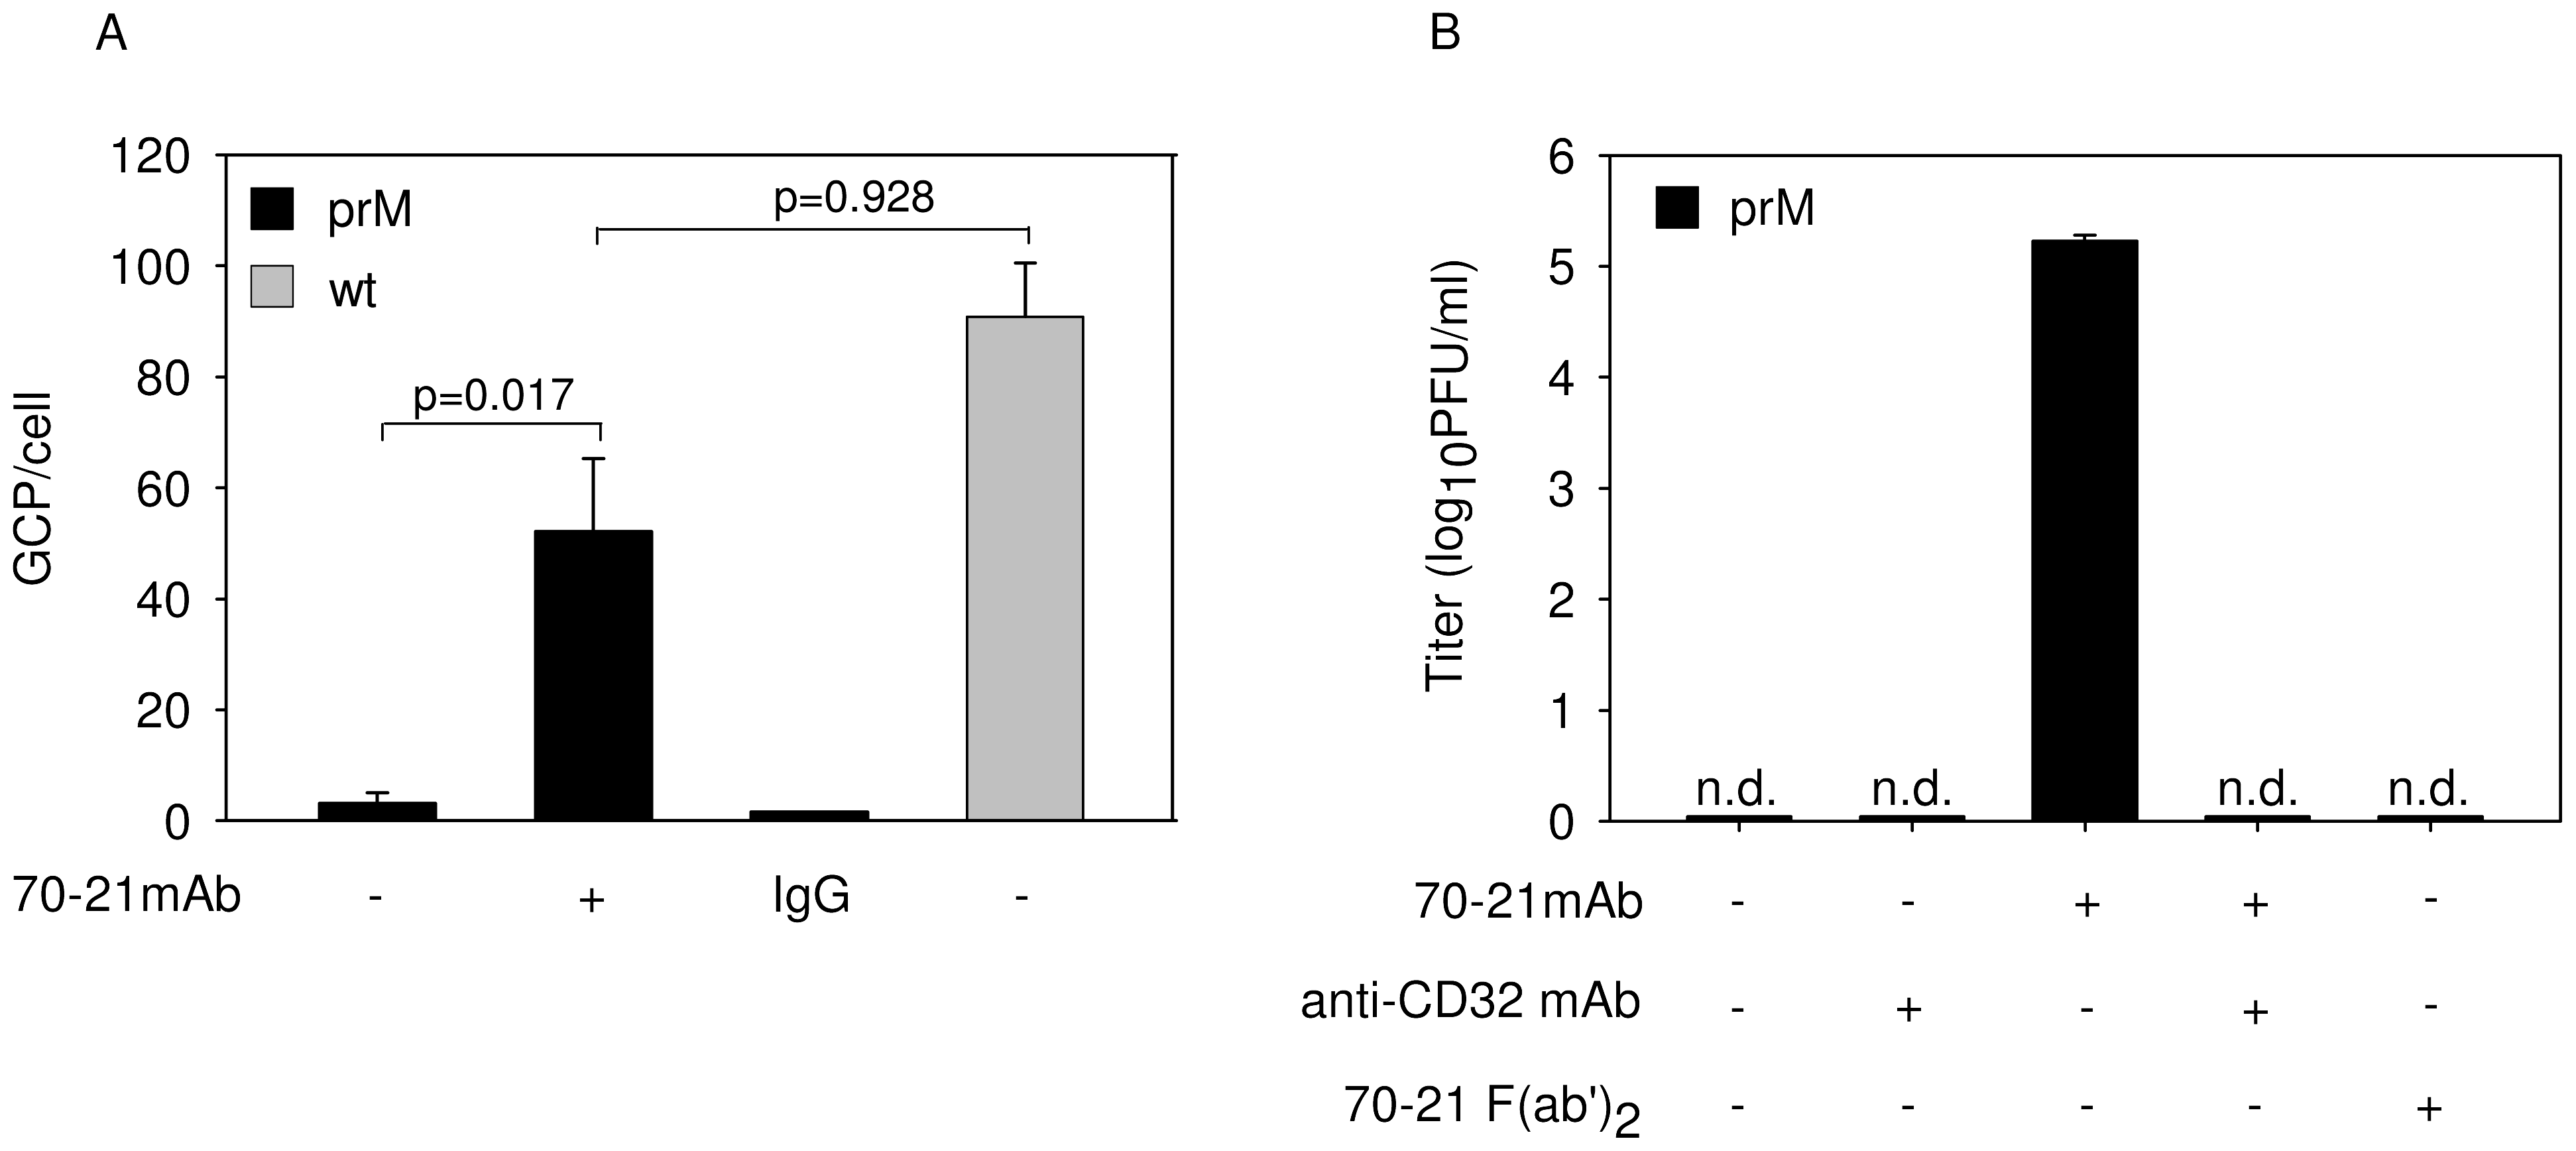 Anti-prM antibody stimulates binding of immature DENV particles to cells through interaction with FcγIIR.